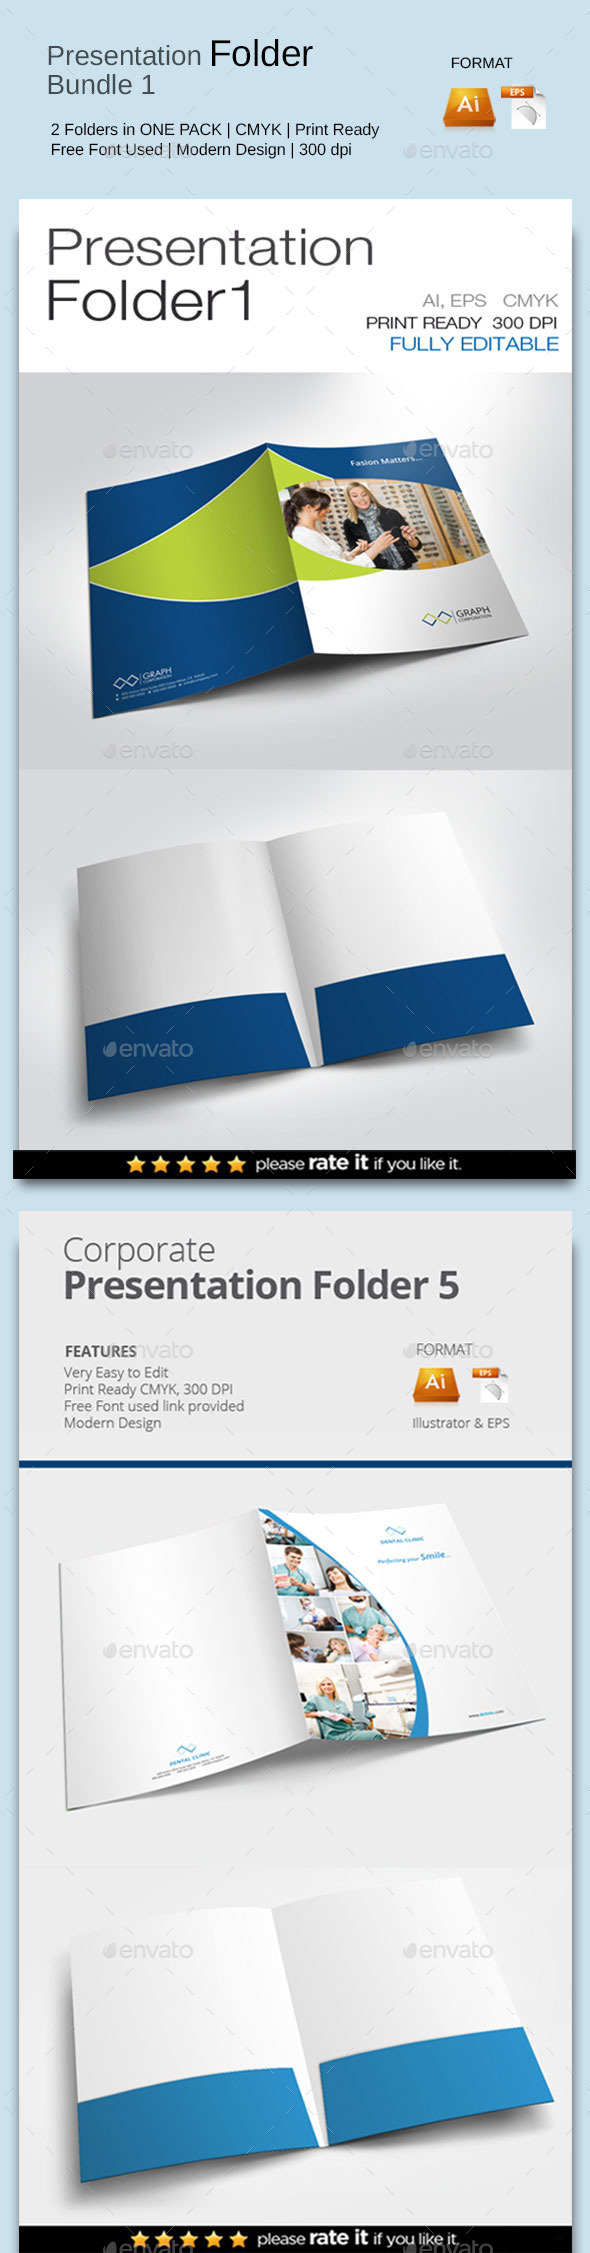 GraphicRiver Presentation Folder Bundle 1 11453099